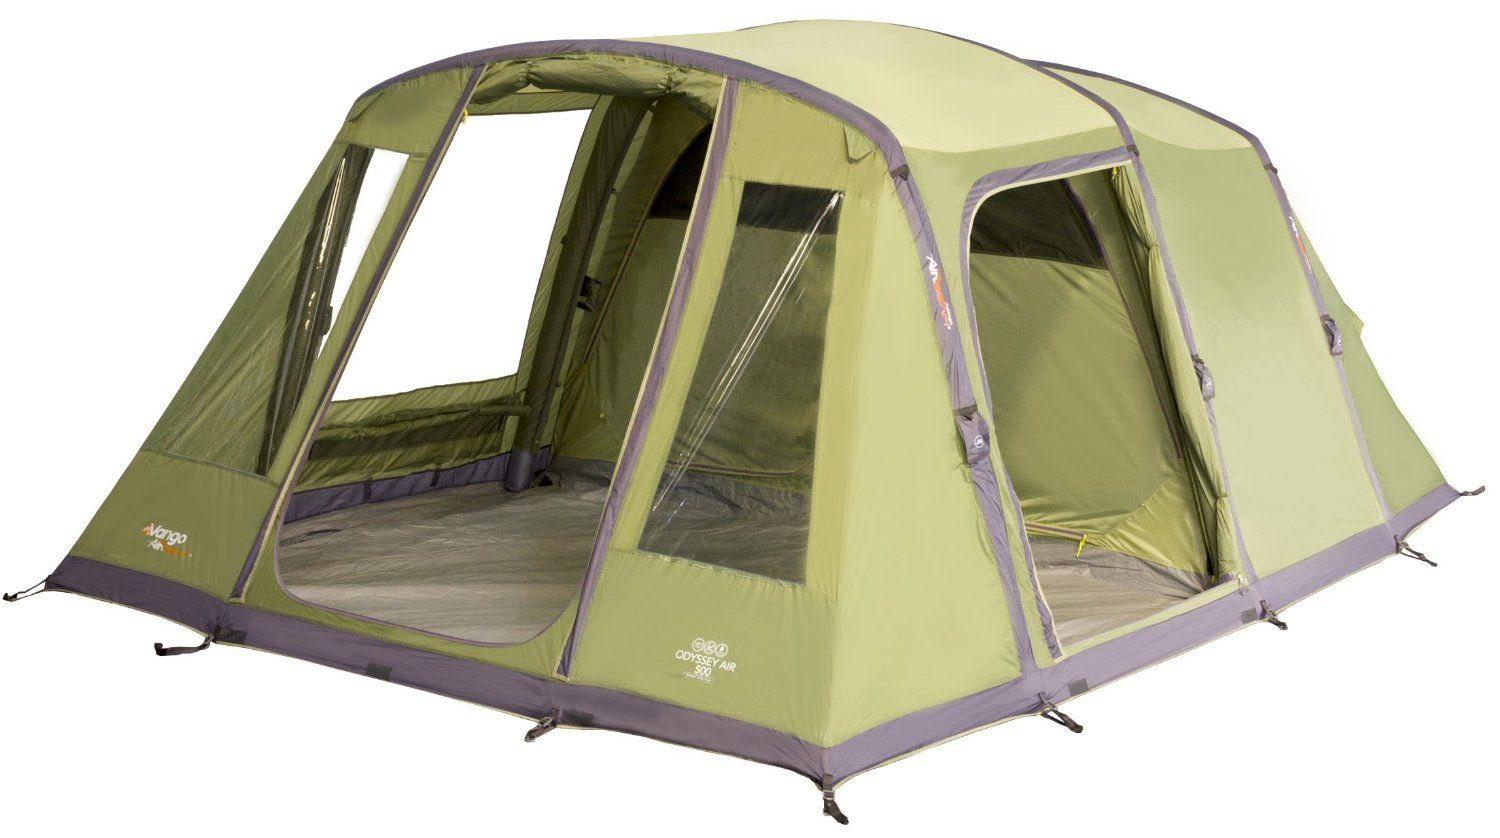 Vango Odyssey Air Beam 500 Inflatable Tunnel Tent 5 Persons - Epsom Green Amazon  sc 1 st  Pinterest : inflatable tunnel tent - memphite.com